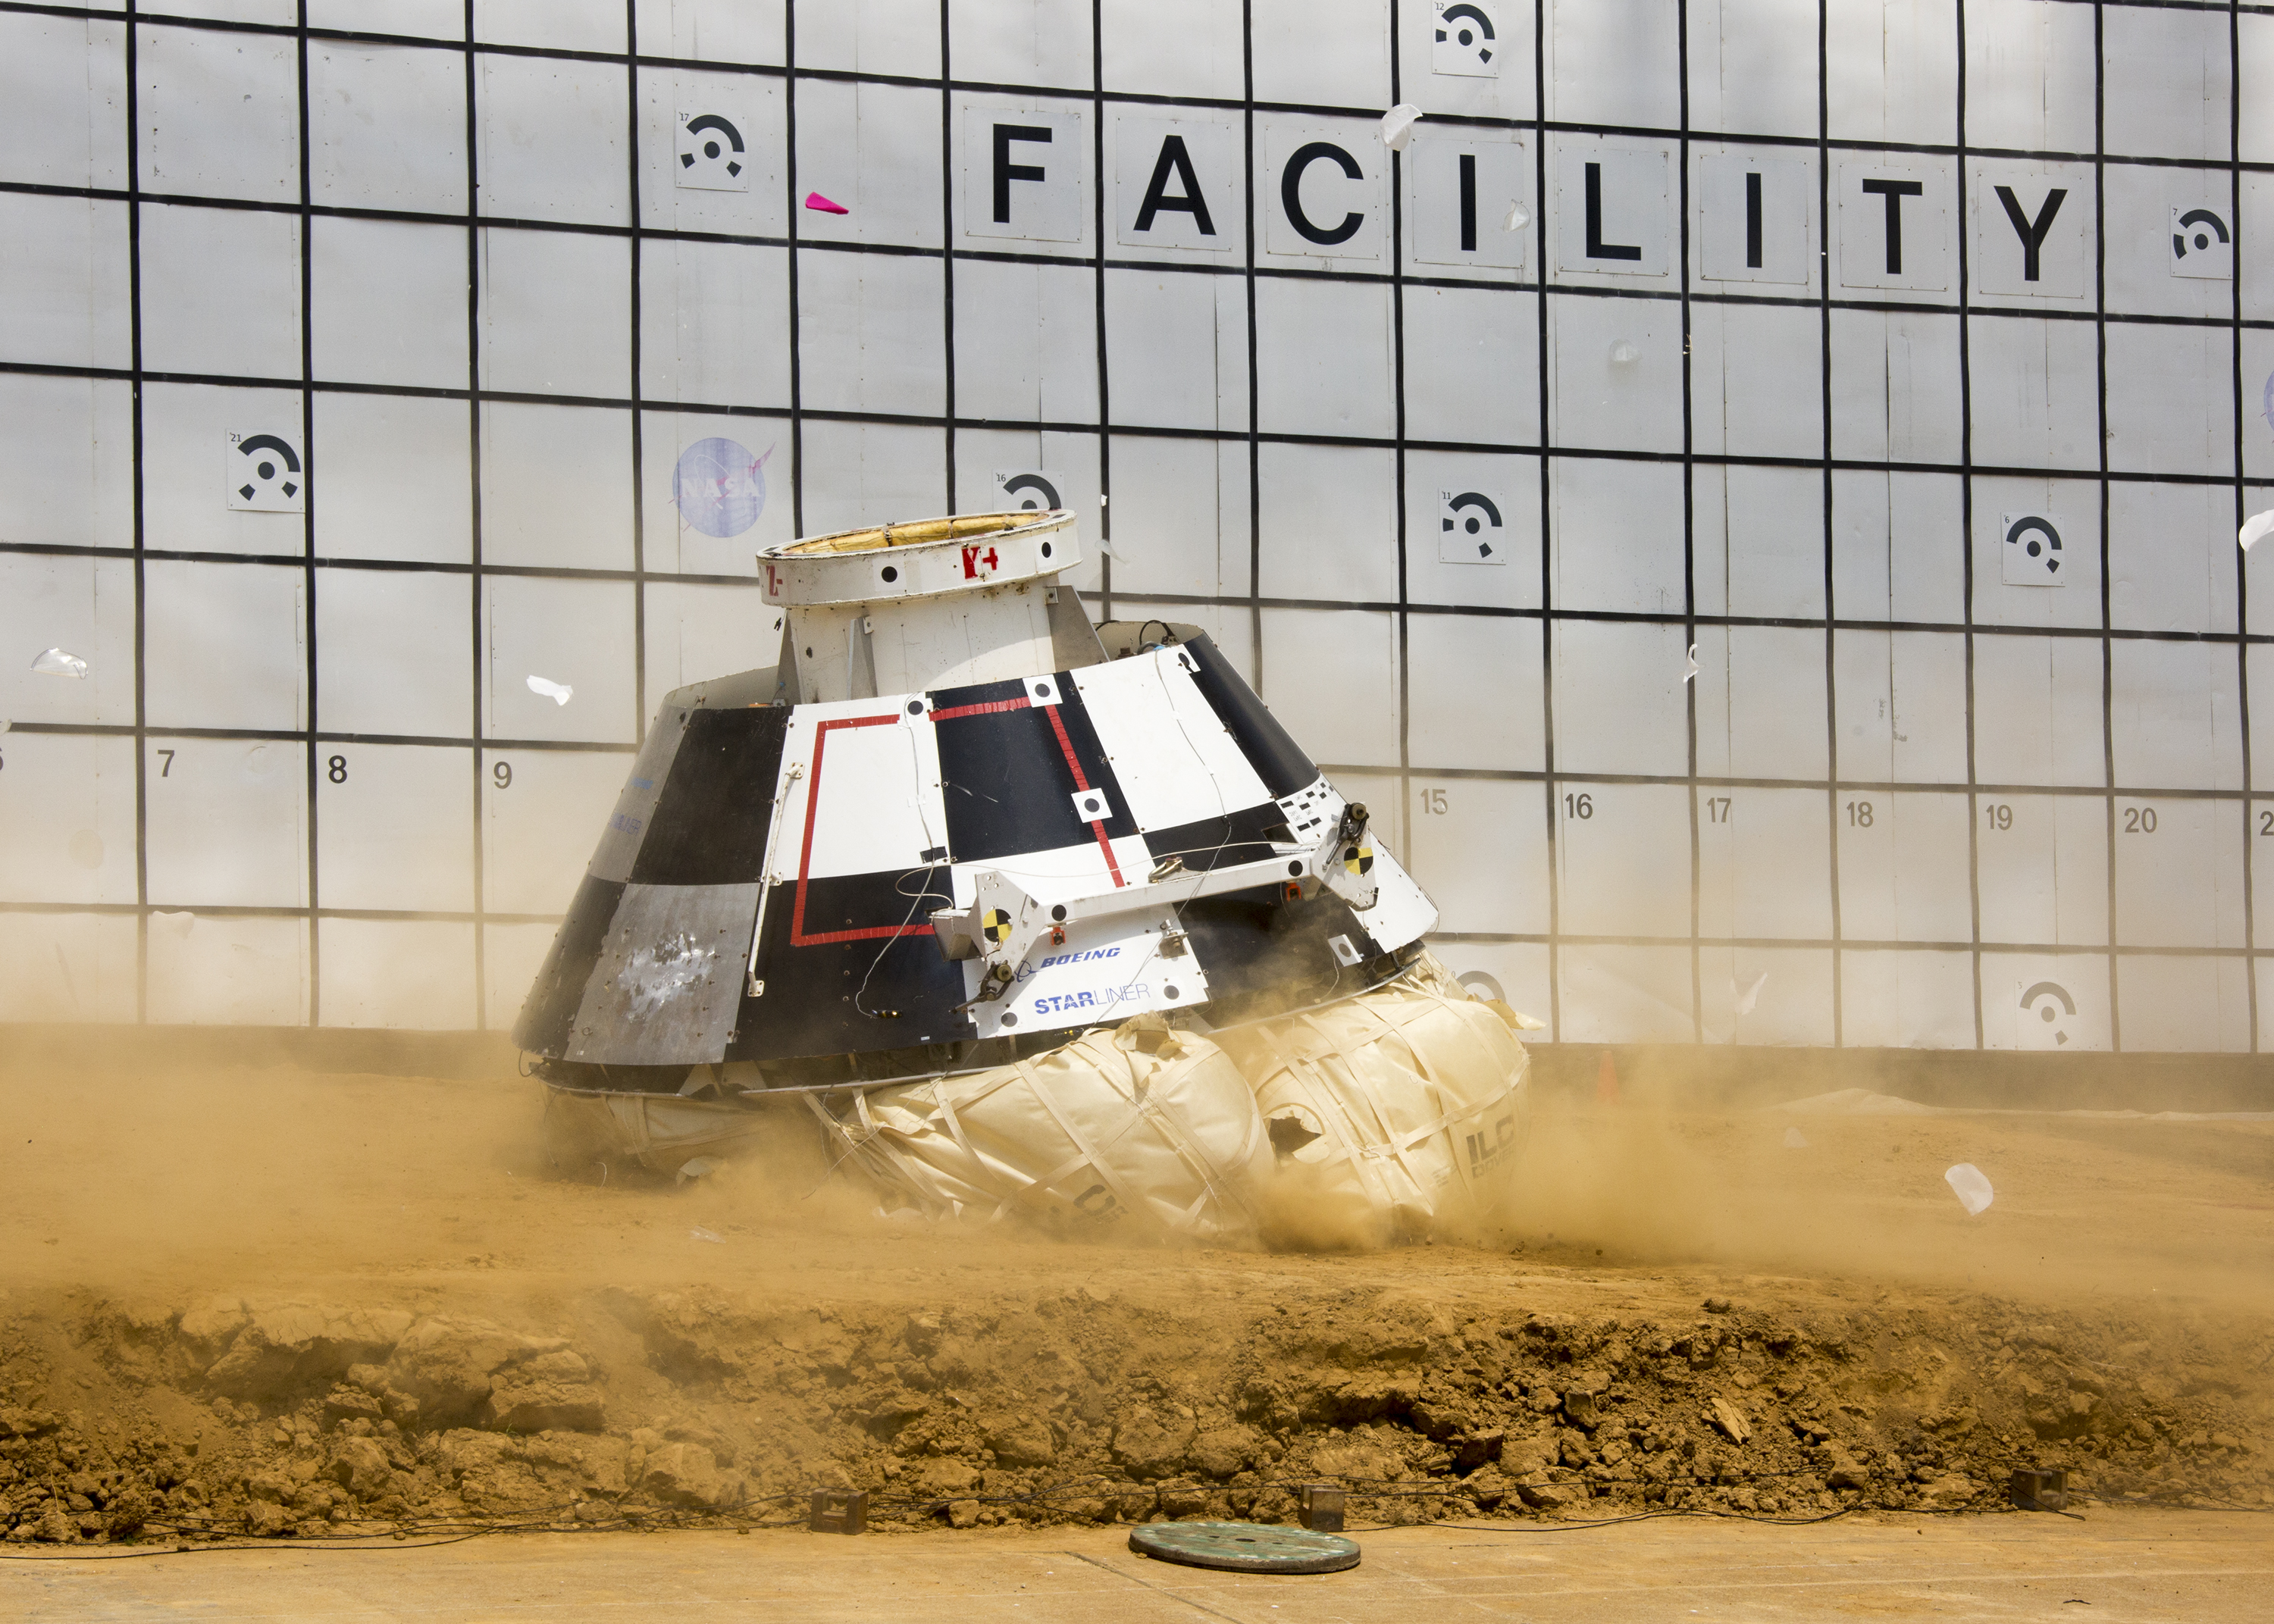 The Starliner mock-up hits the ground during landing system tests.